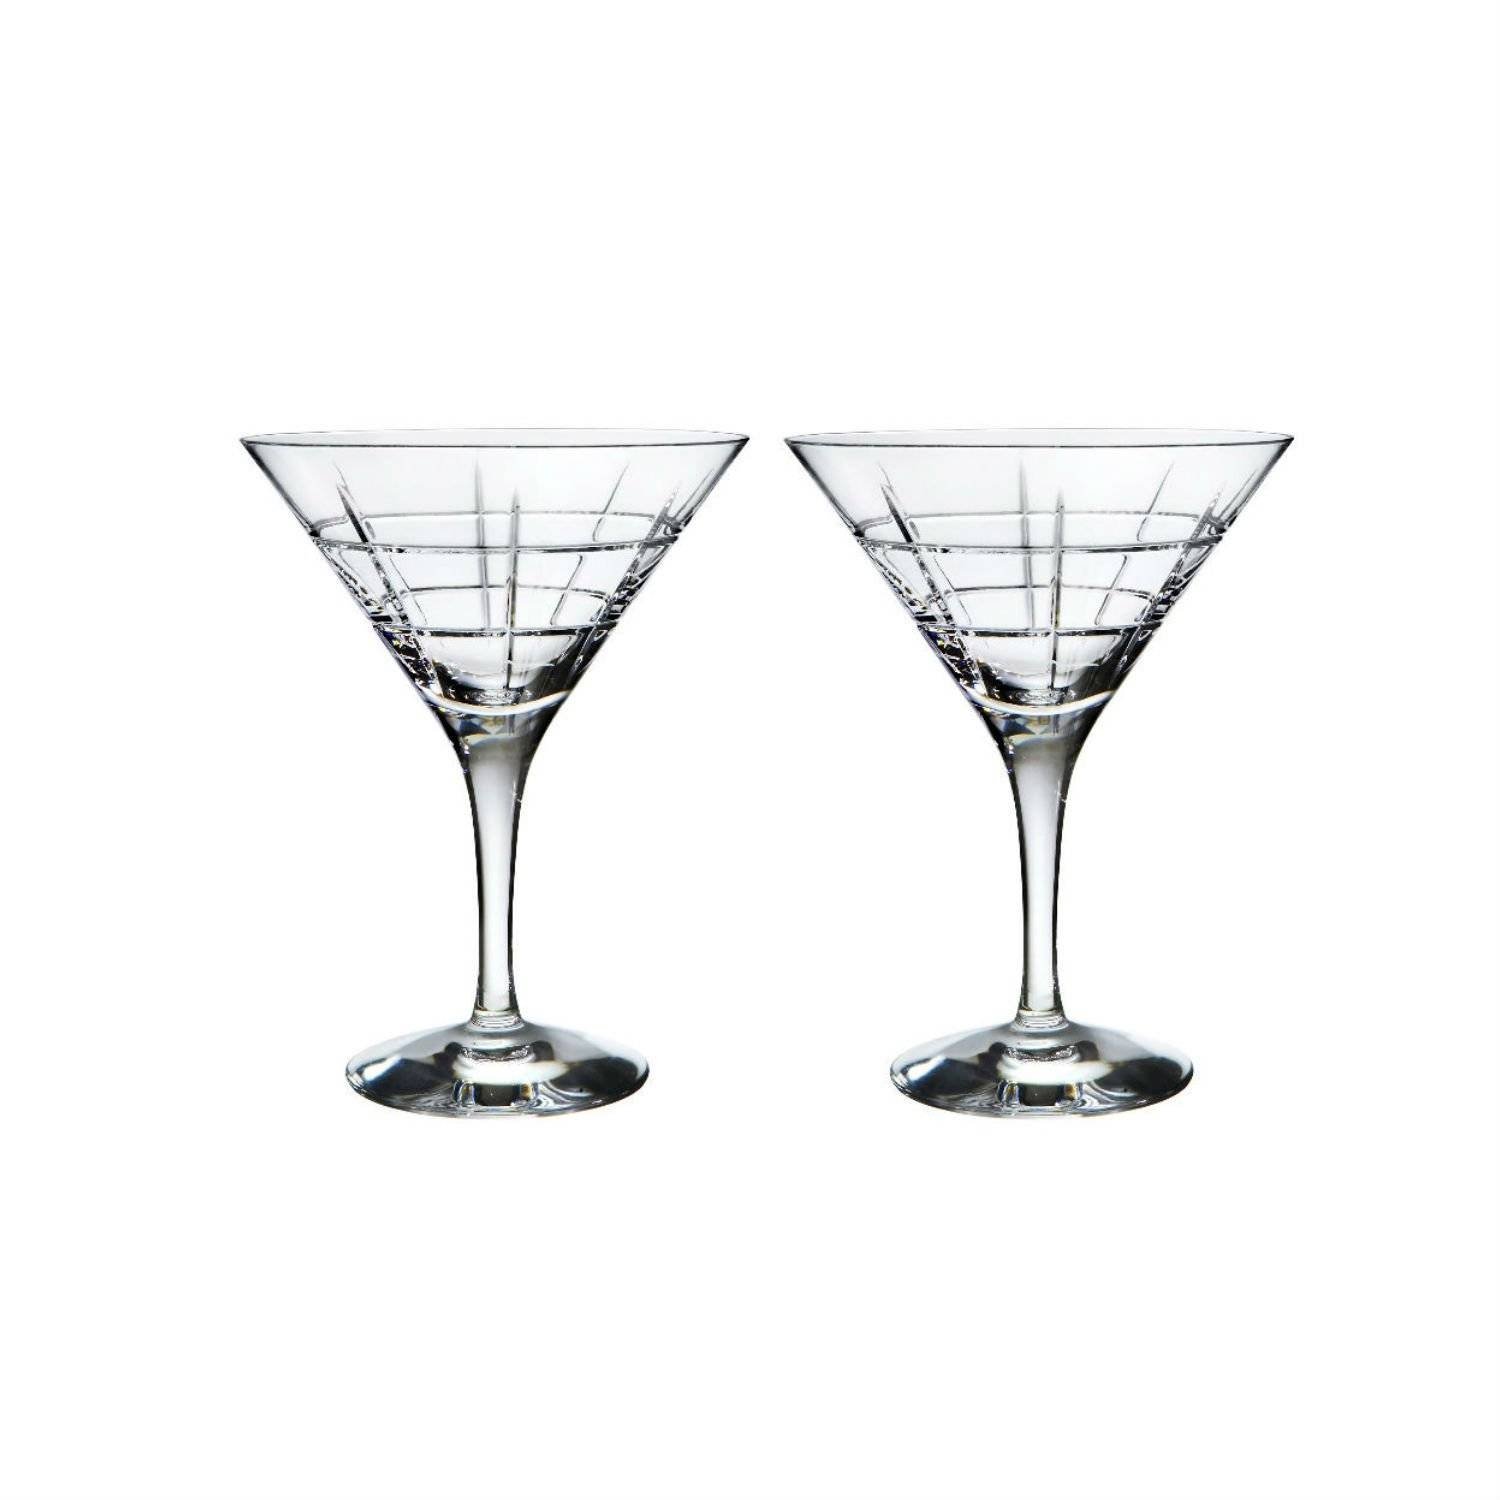 Hand Blown Crystal Martini Glasses (Set Of 2) – Trnk Within Most Up To Date Martini Glass Wall Art (View 16 of 30)